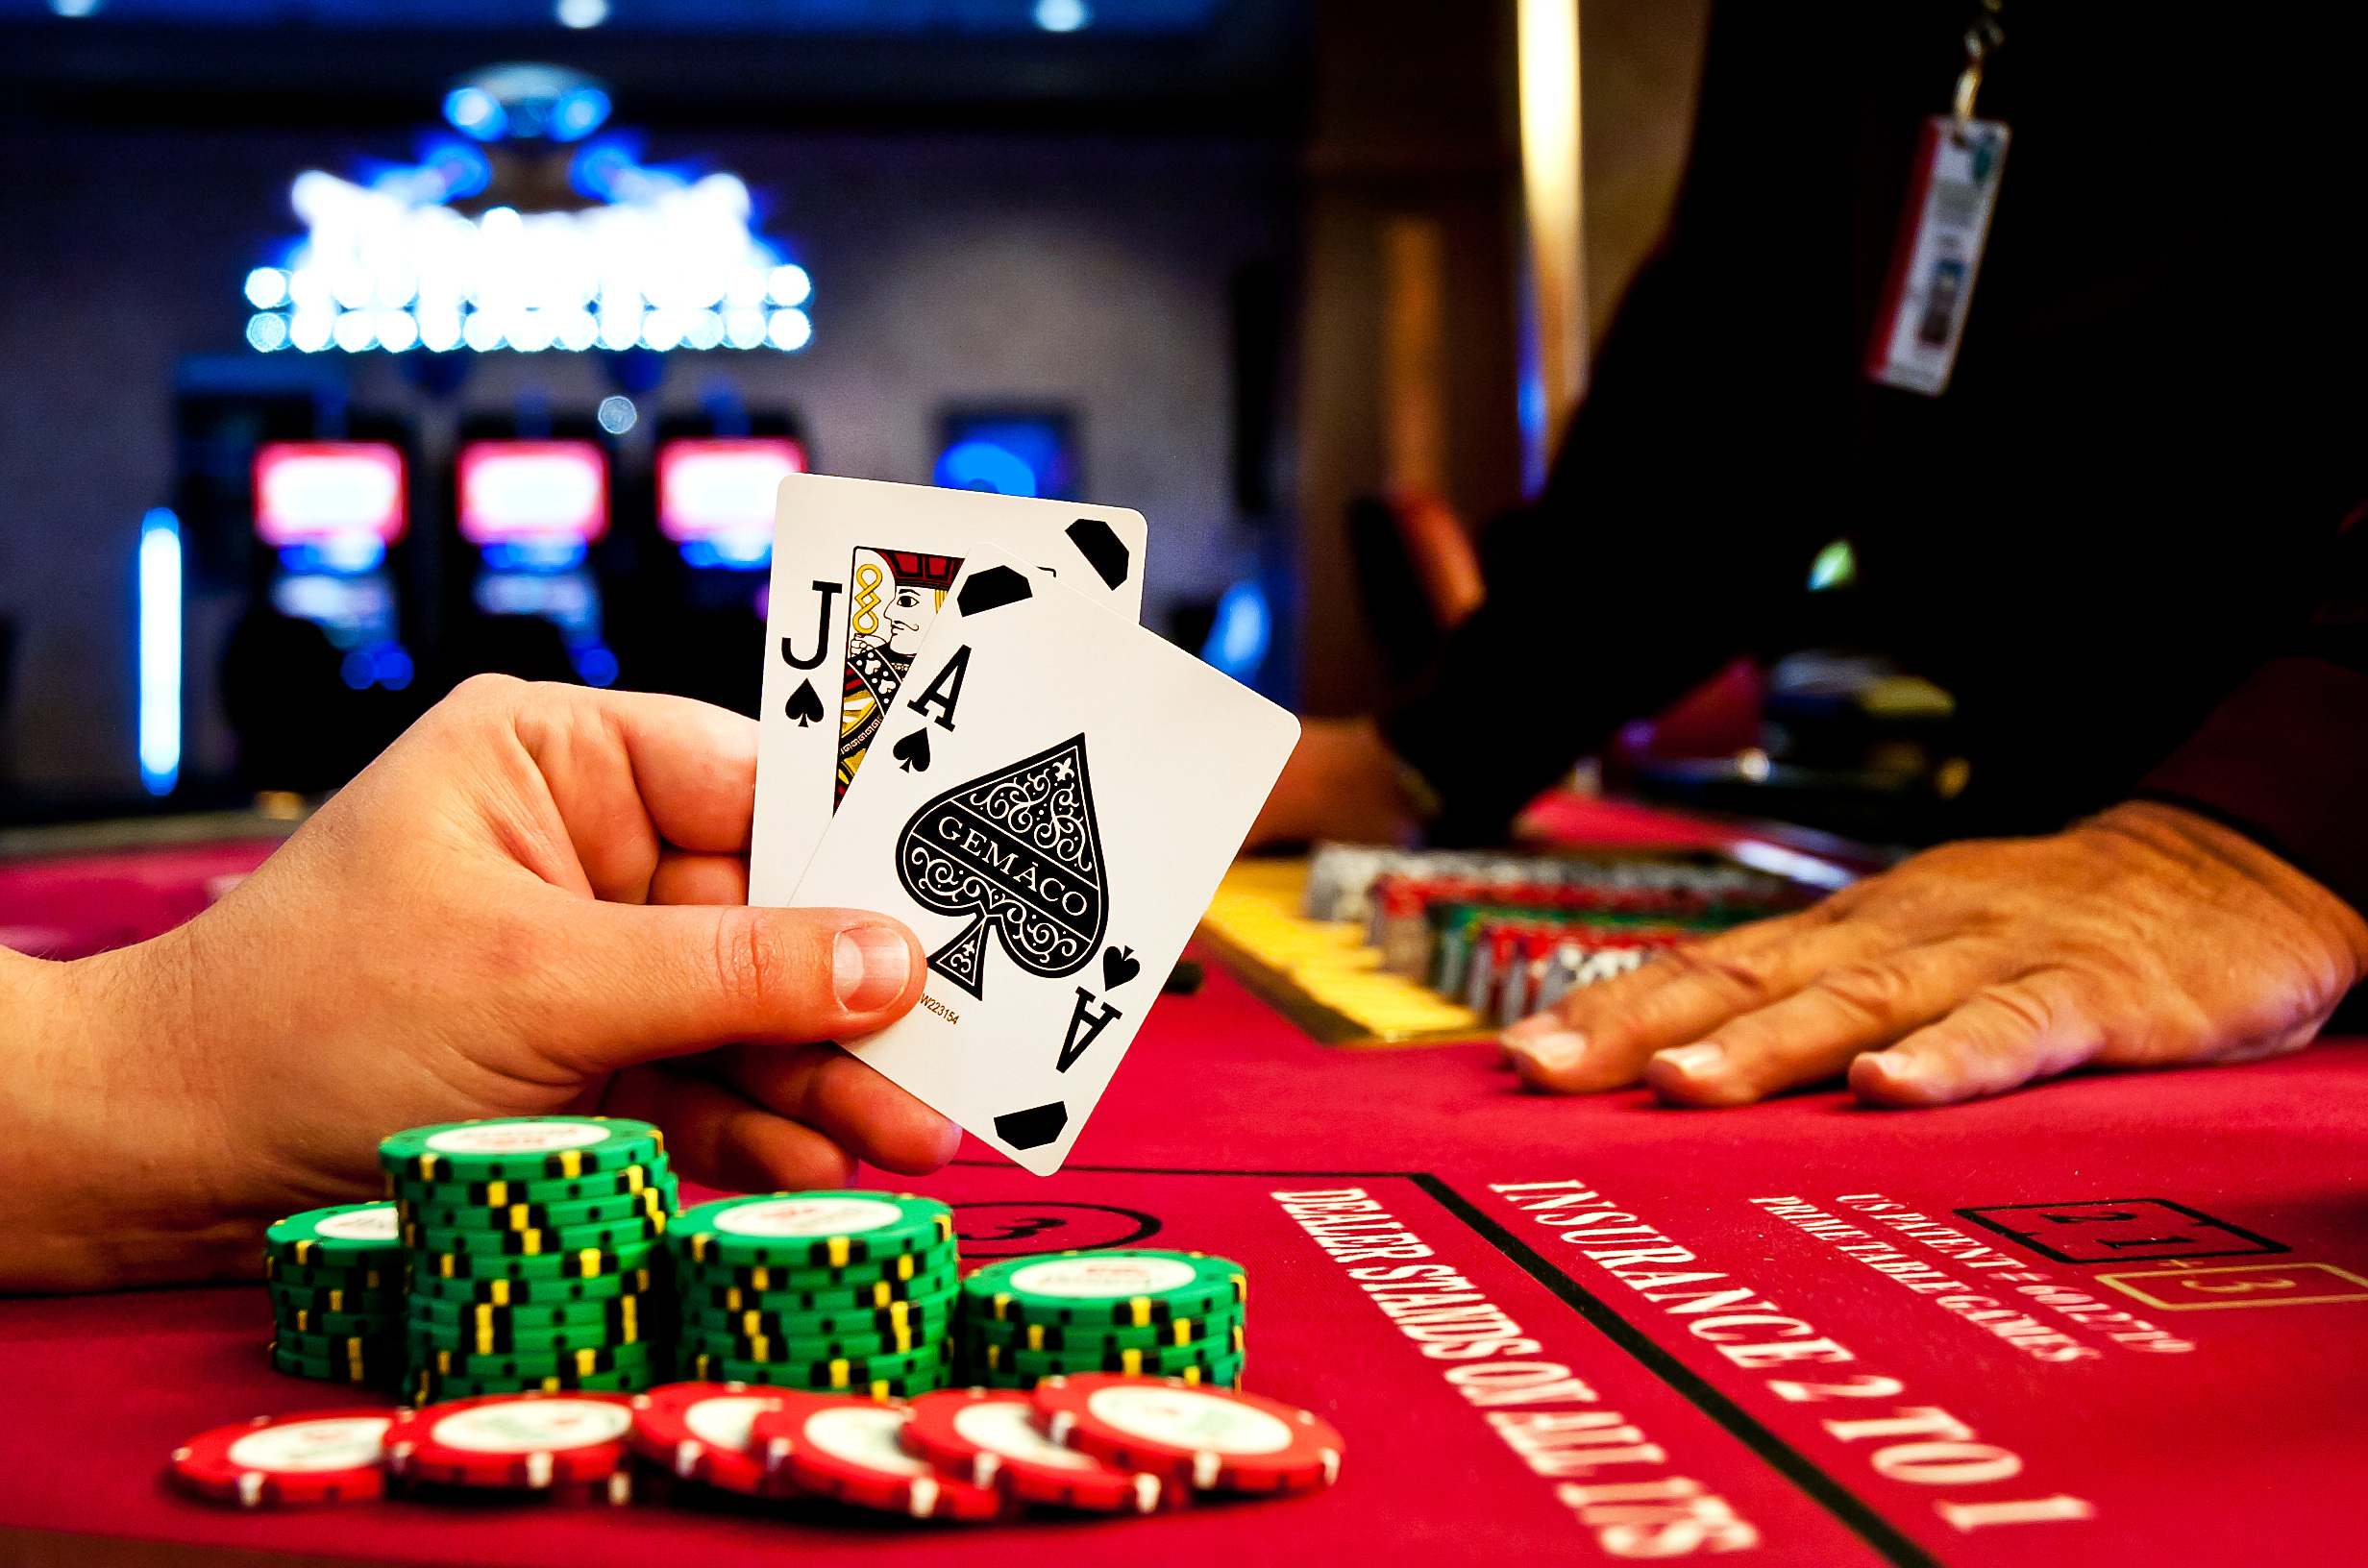 10 facts you didn't know about Blackjack, the most addictive game in the casino